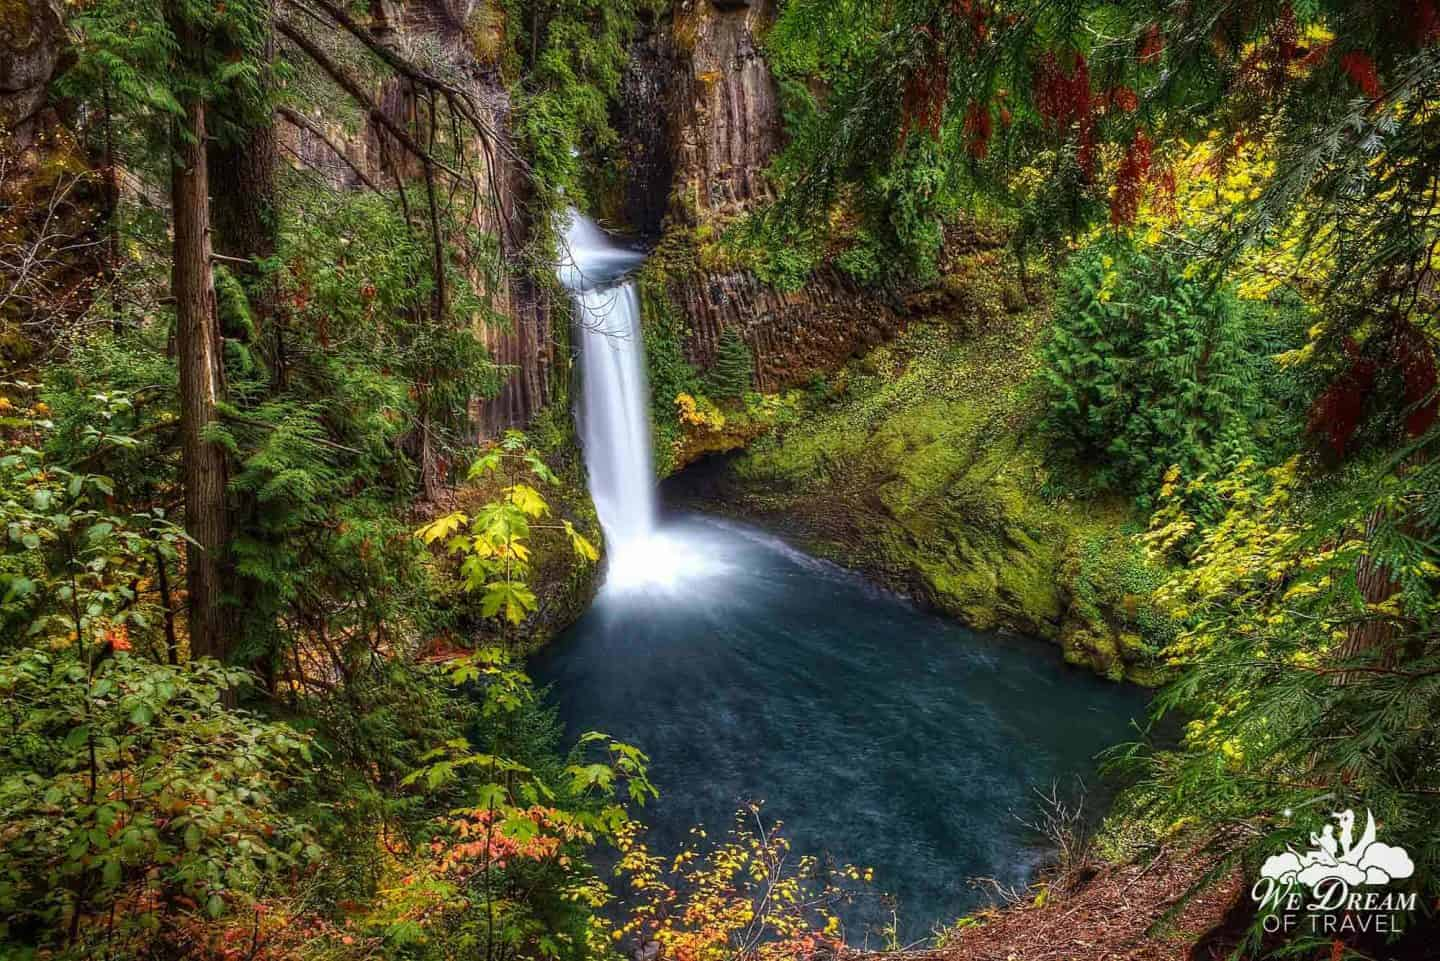 Many Southern Oregonians consider the best waterfall in Oregon to be the locally renown Toketee Falls.